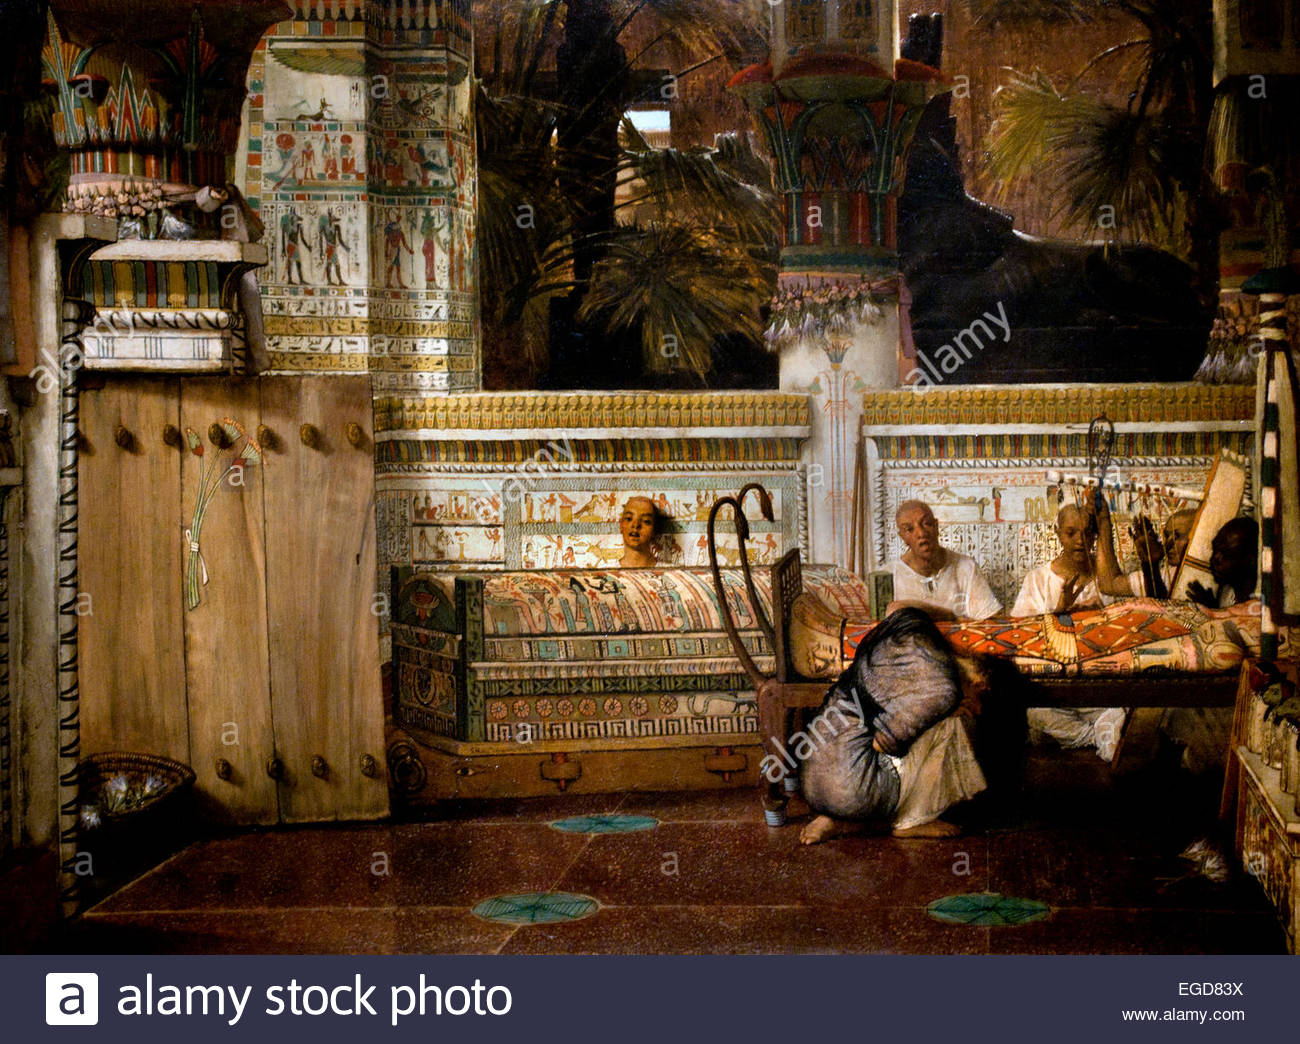 The Egyptian Widow 1872 Lourens Alma Tadema  1836-1912 Dutch Netherlands - Stock Image